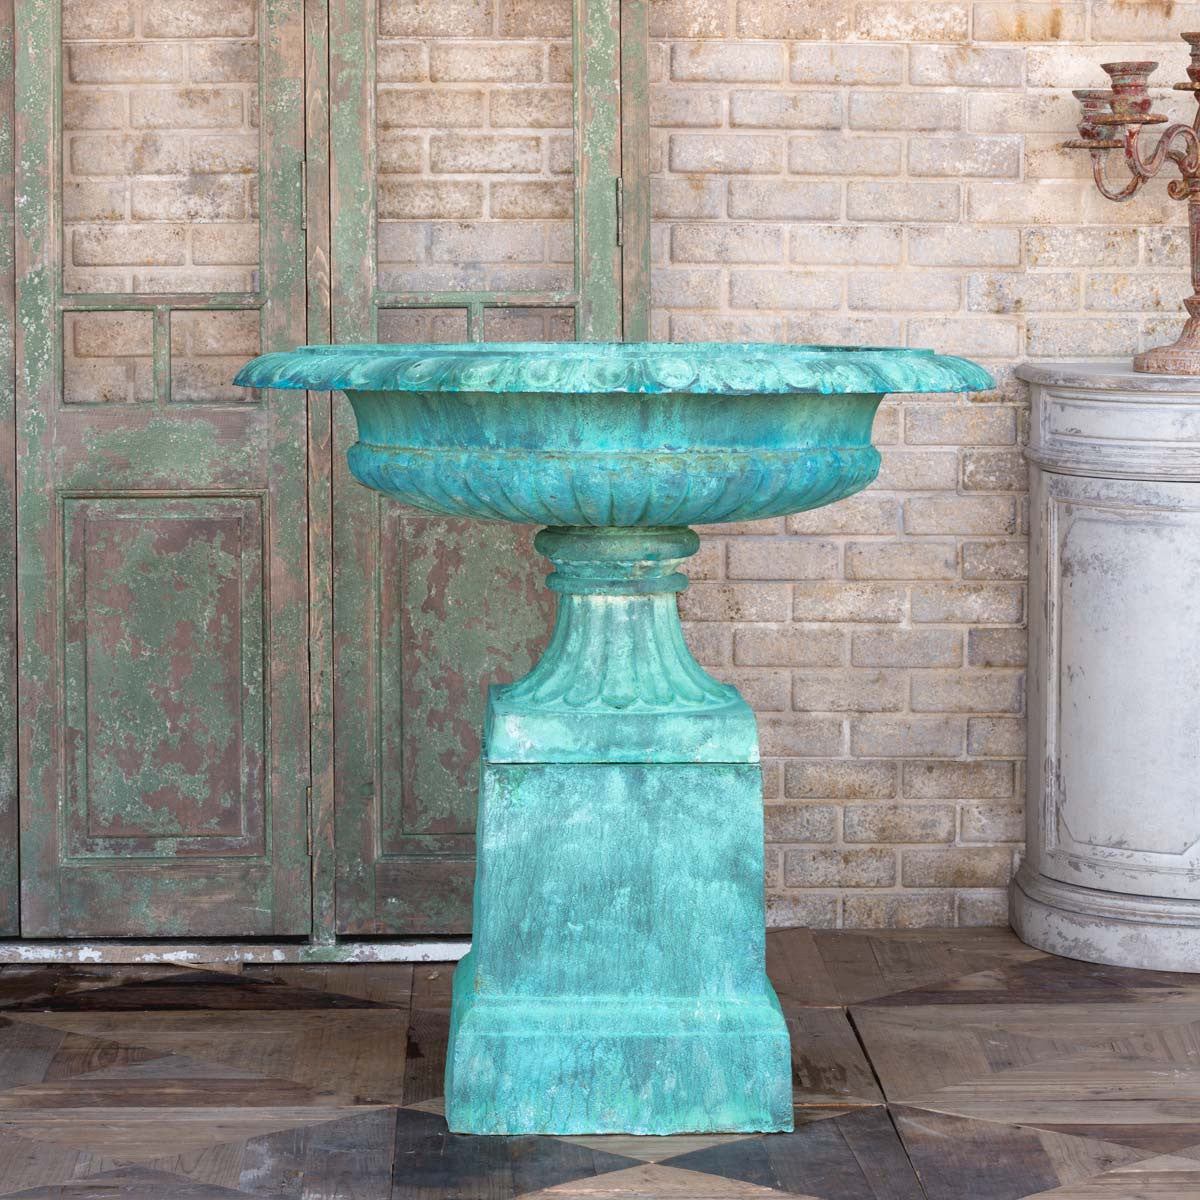 park hill collection cast iron estate urn with pedestal, restoration hardware outdoor estate urns